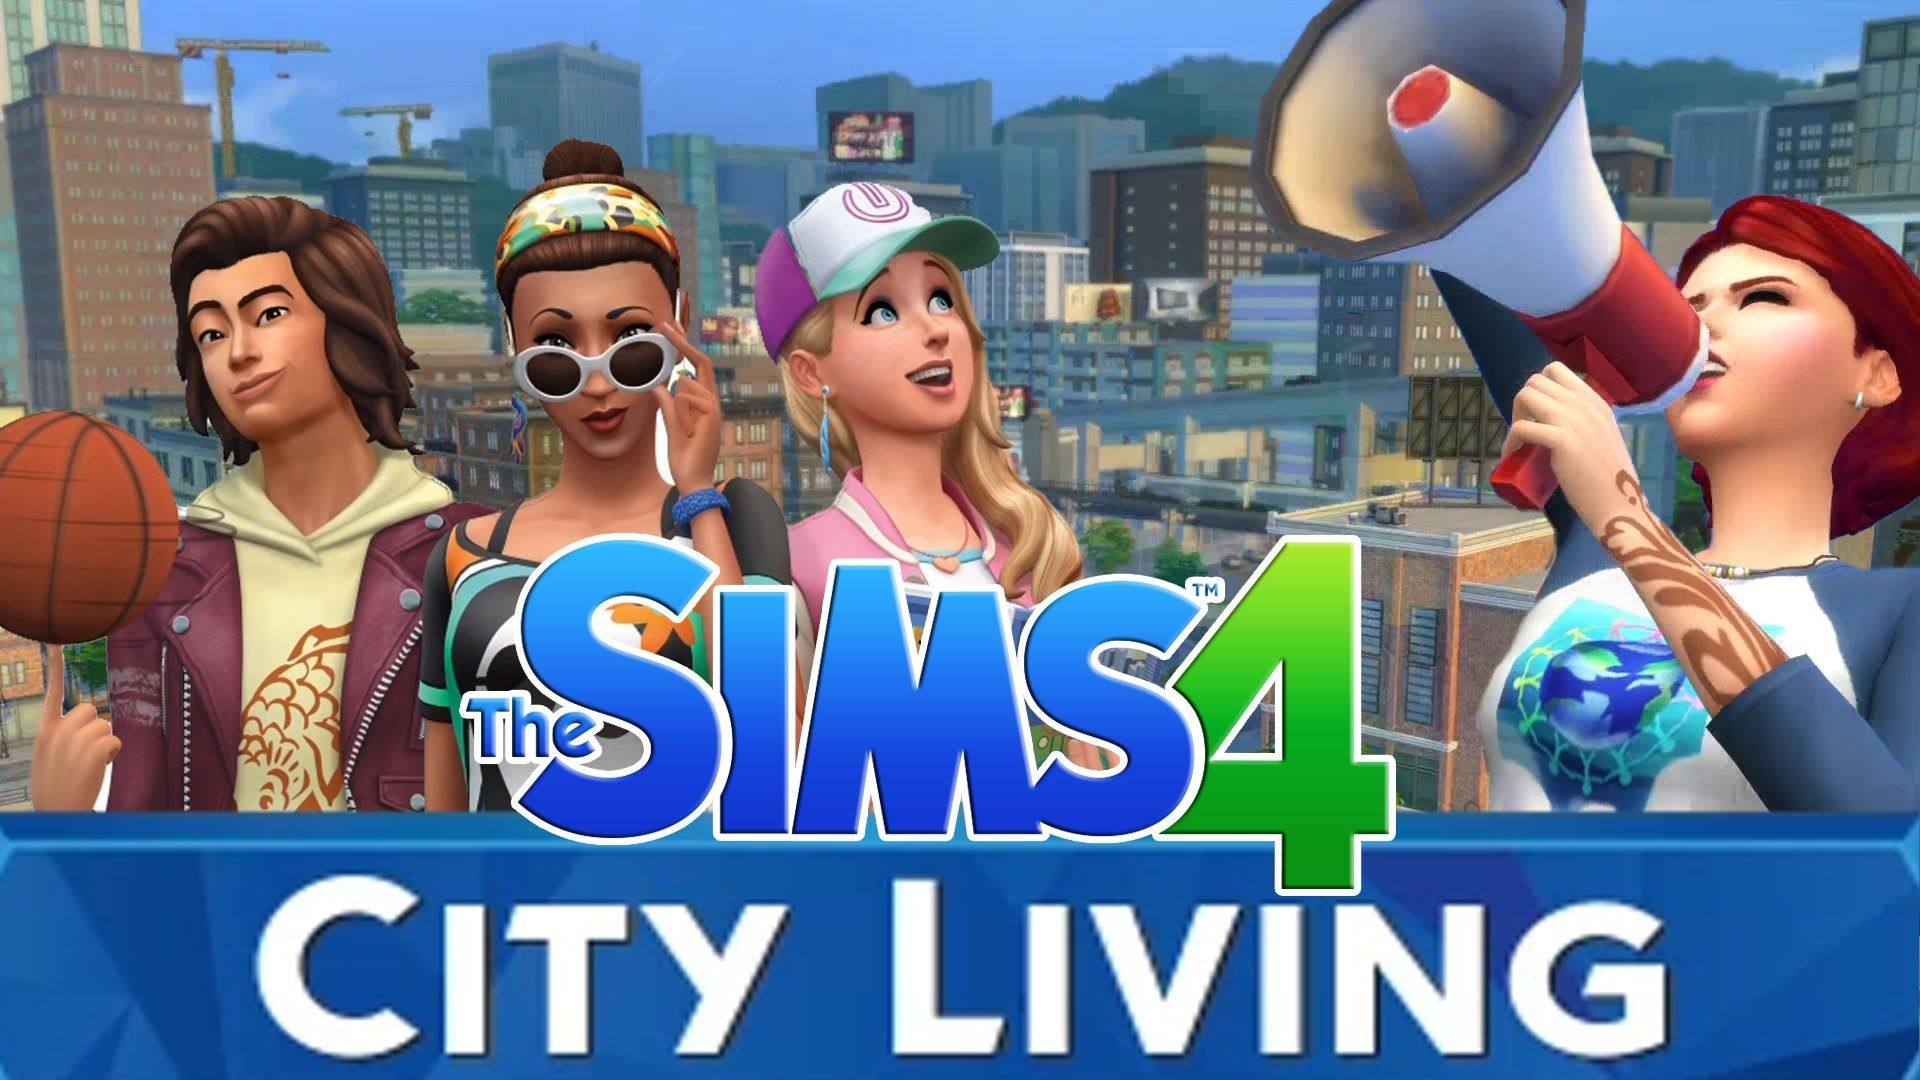 The Sims 4 City Living Download Sims 4 City Living Sims 4 Sims 4 Expansions